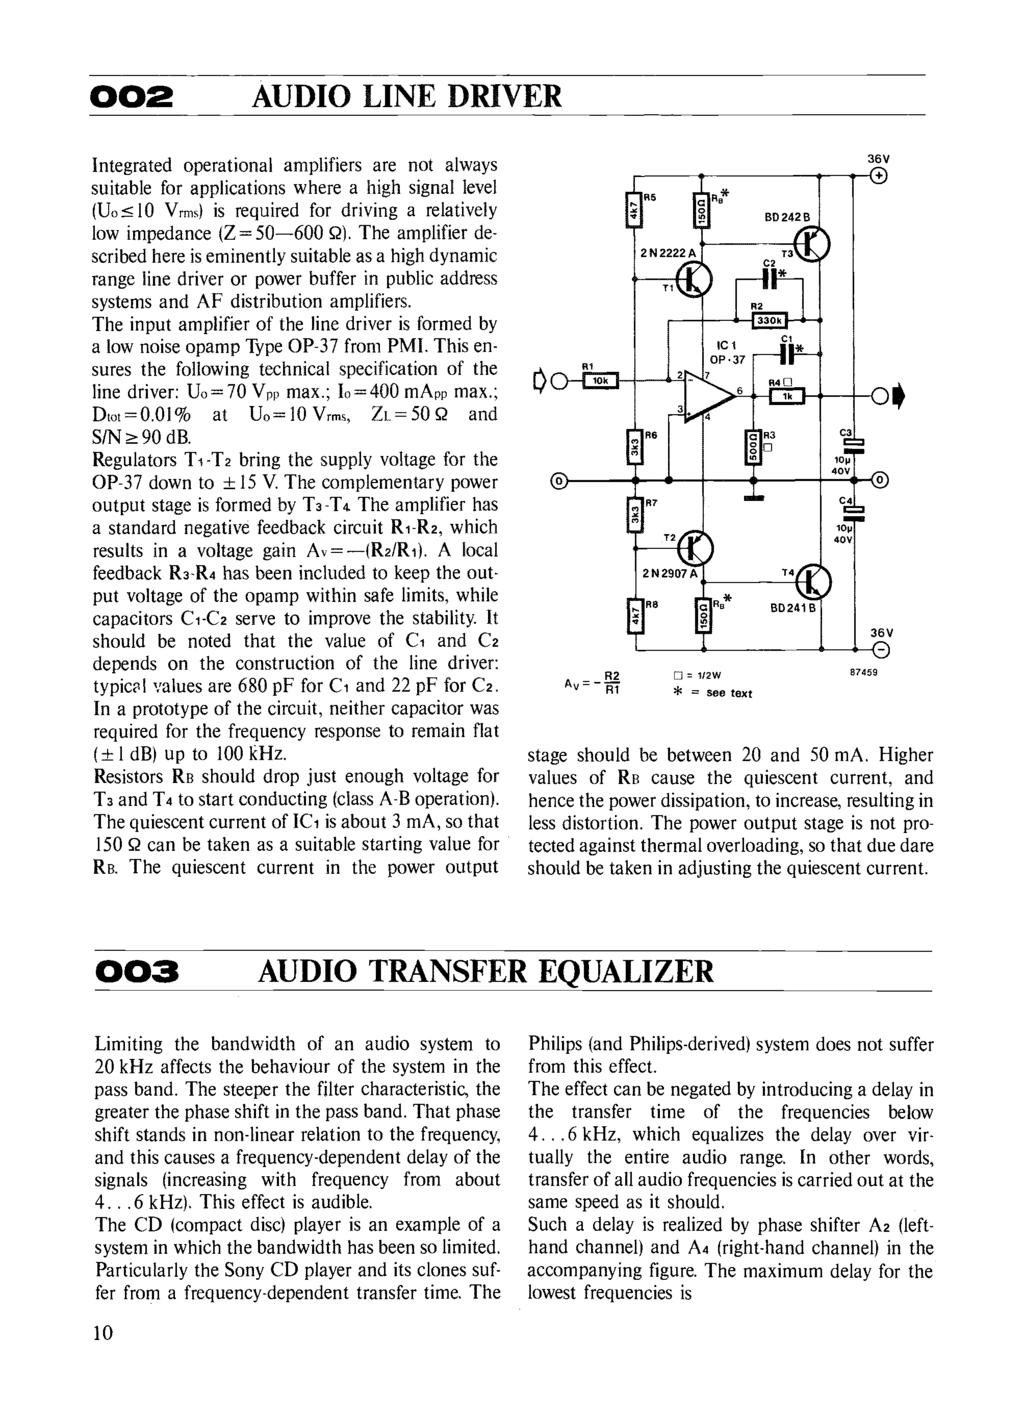 Circuits Elektor Electronics Pdf Amplifier Transformer Wiring Moreover Electronic Dog Repellent Circuit 2 Audio Line Driver Integrated Operational Amplifiers Are Not Always Suitable For Applications Where A High